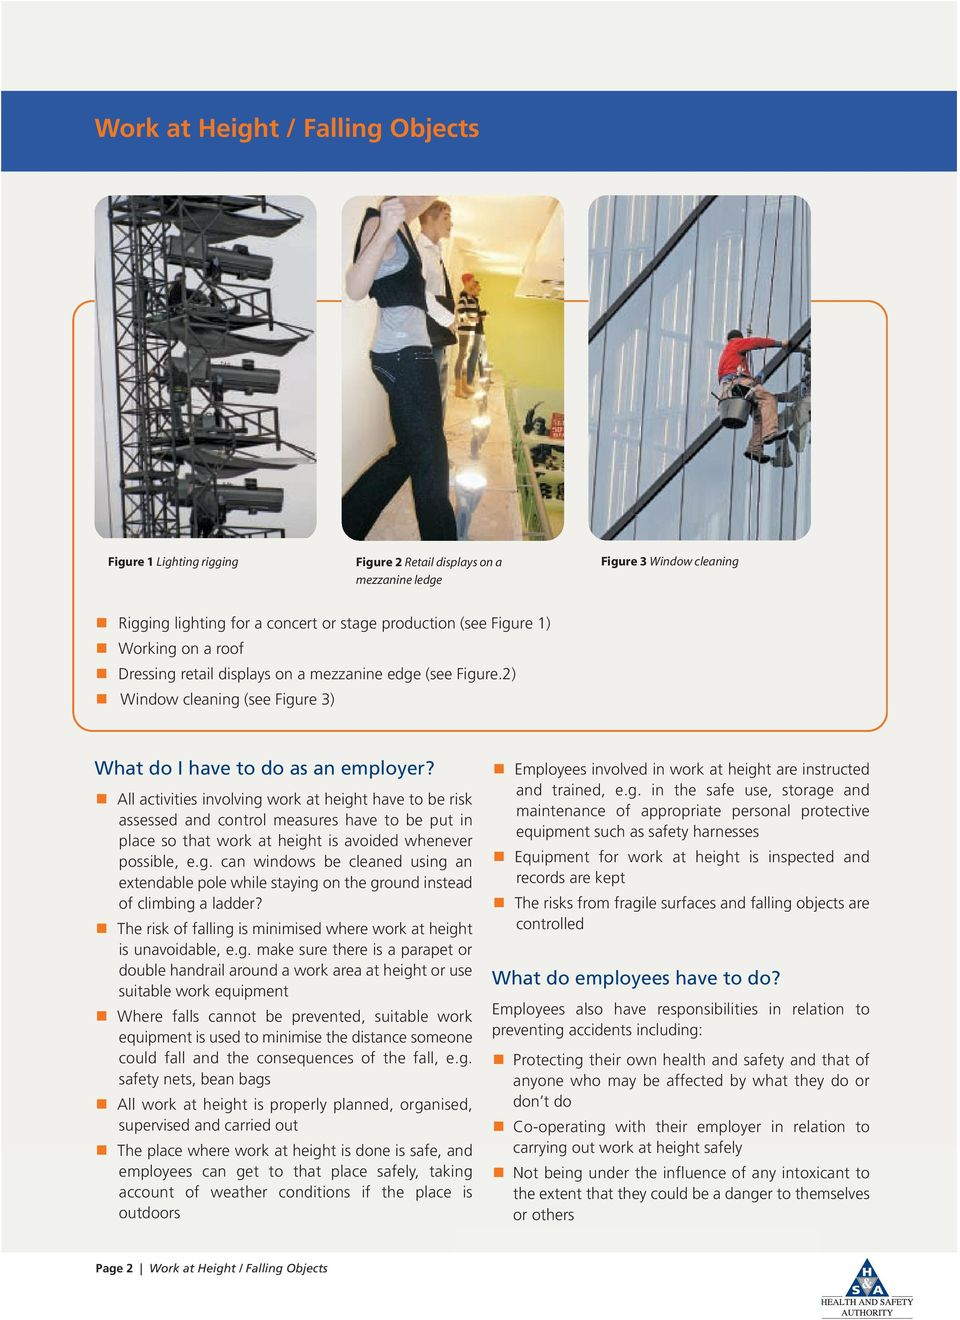 All activities involving work at height have to be risk assessed and control measures have to be put in place so that work at height is avoided whenever possible, e.g. can windows be cleaned using an extendable pole while staying on the ground instead of climbing a ladder?